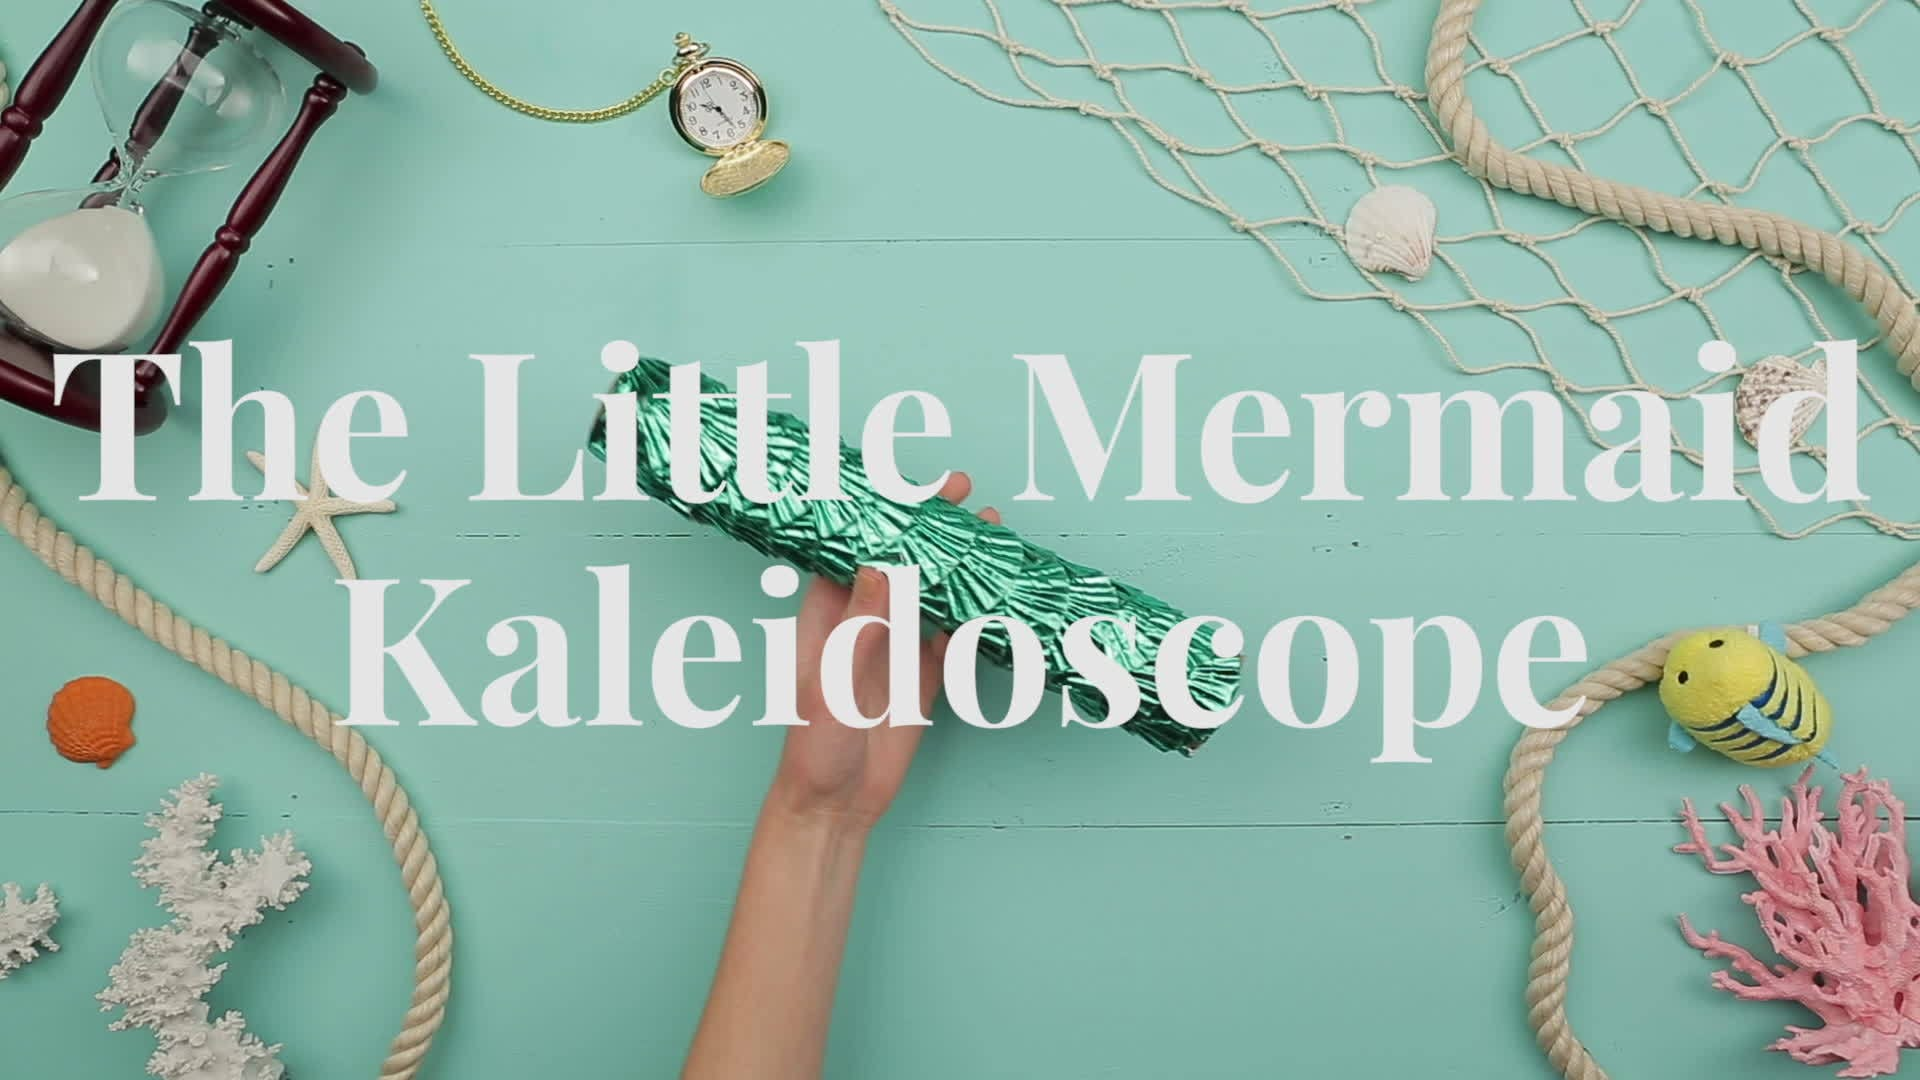 Disney Family: The Little Mermaid Kaleidoscope